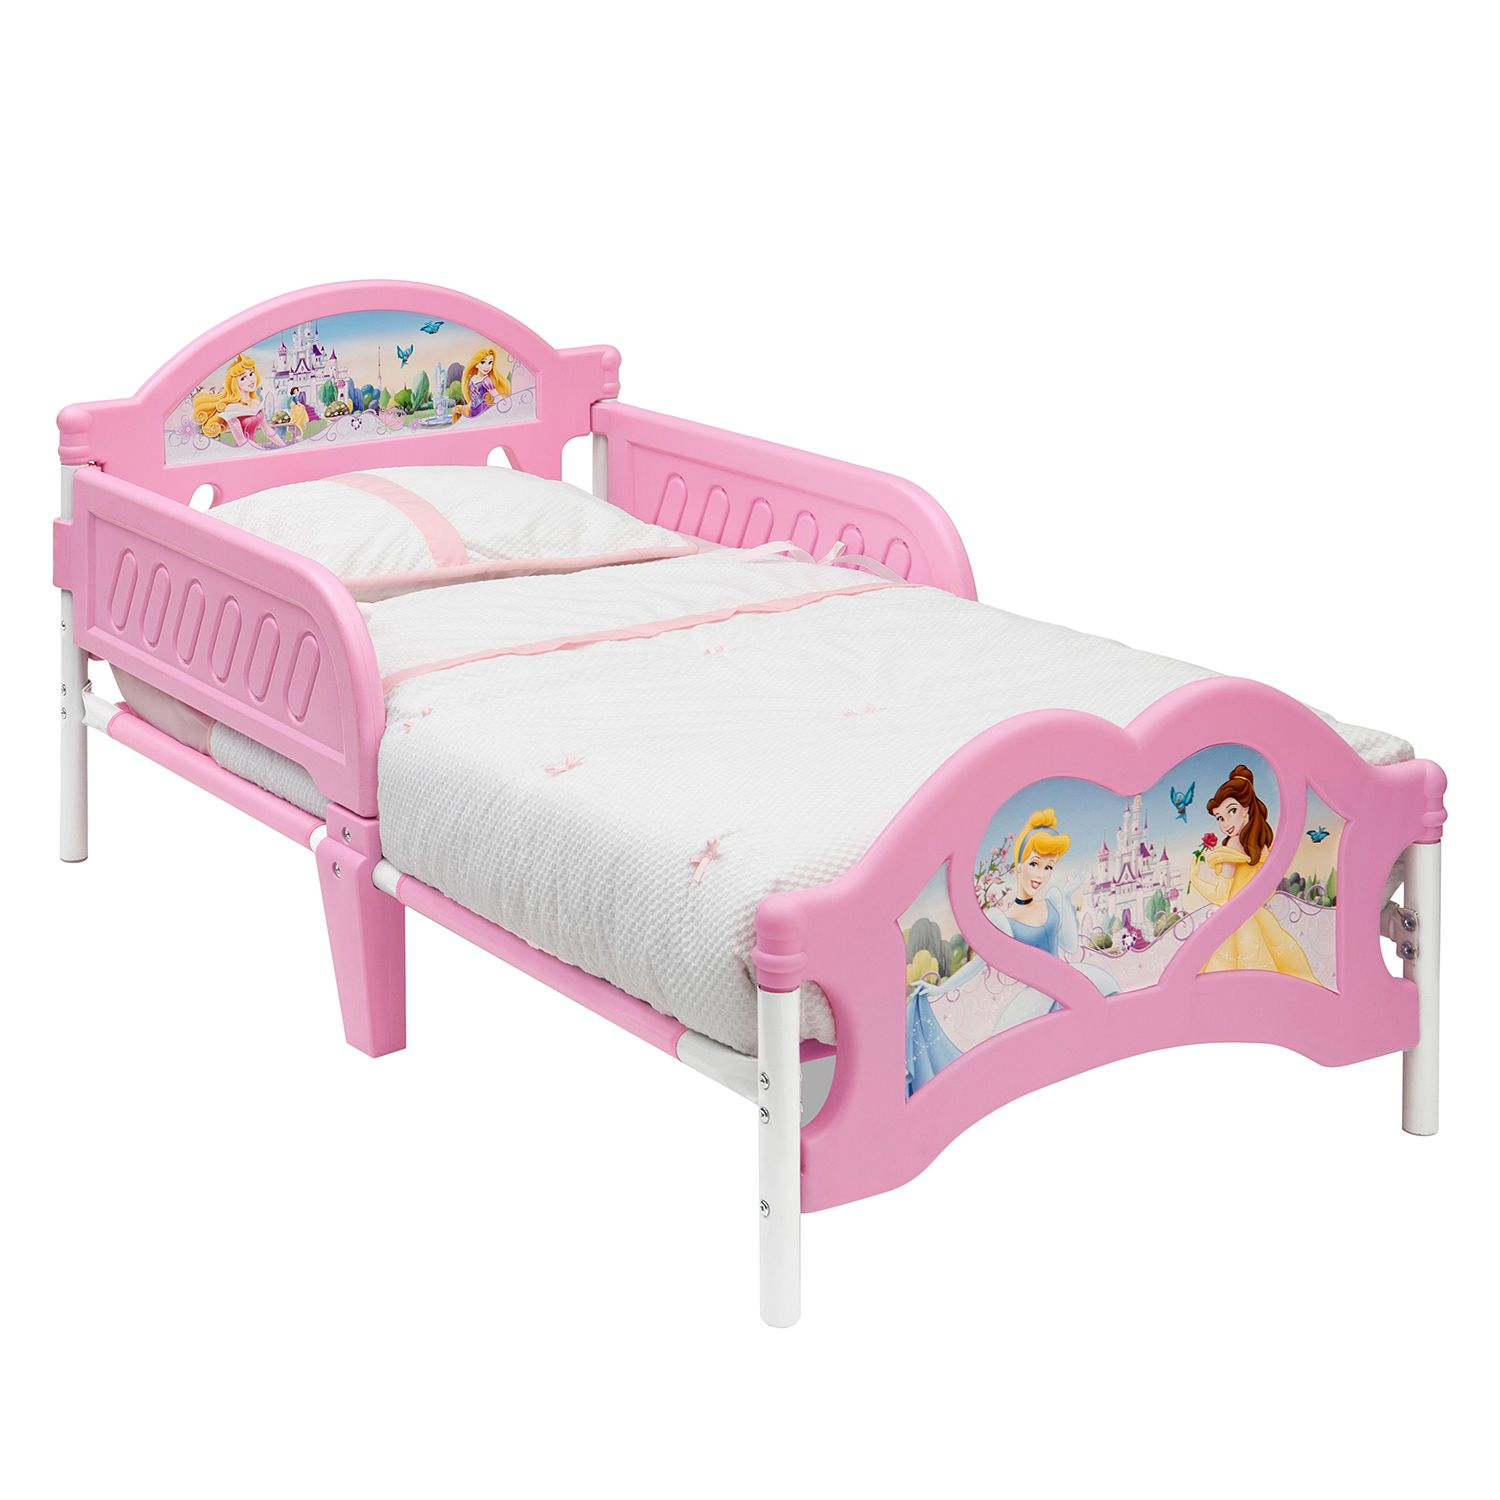 Lit junior Princess - 70 x 140 cm, Delta Children